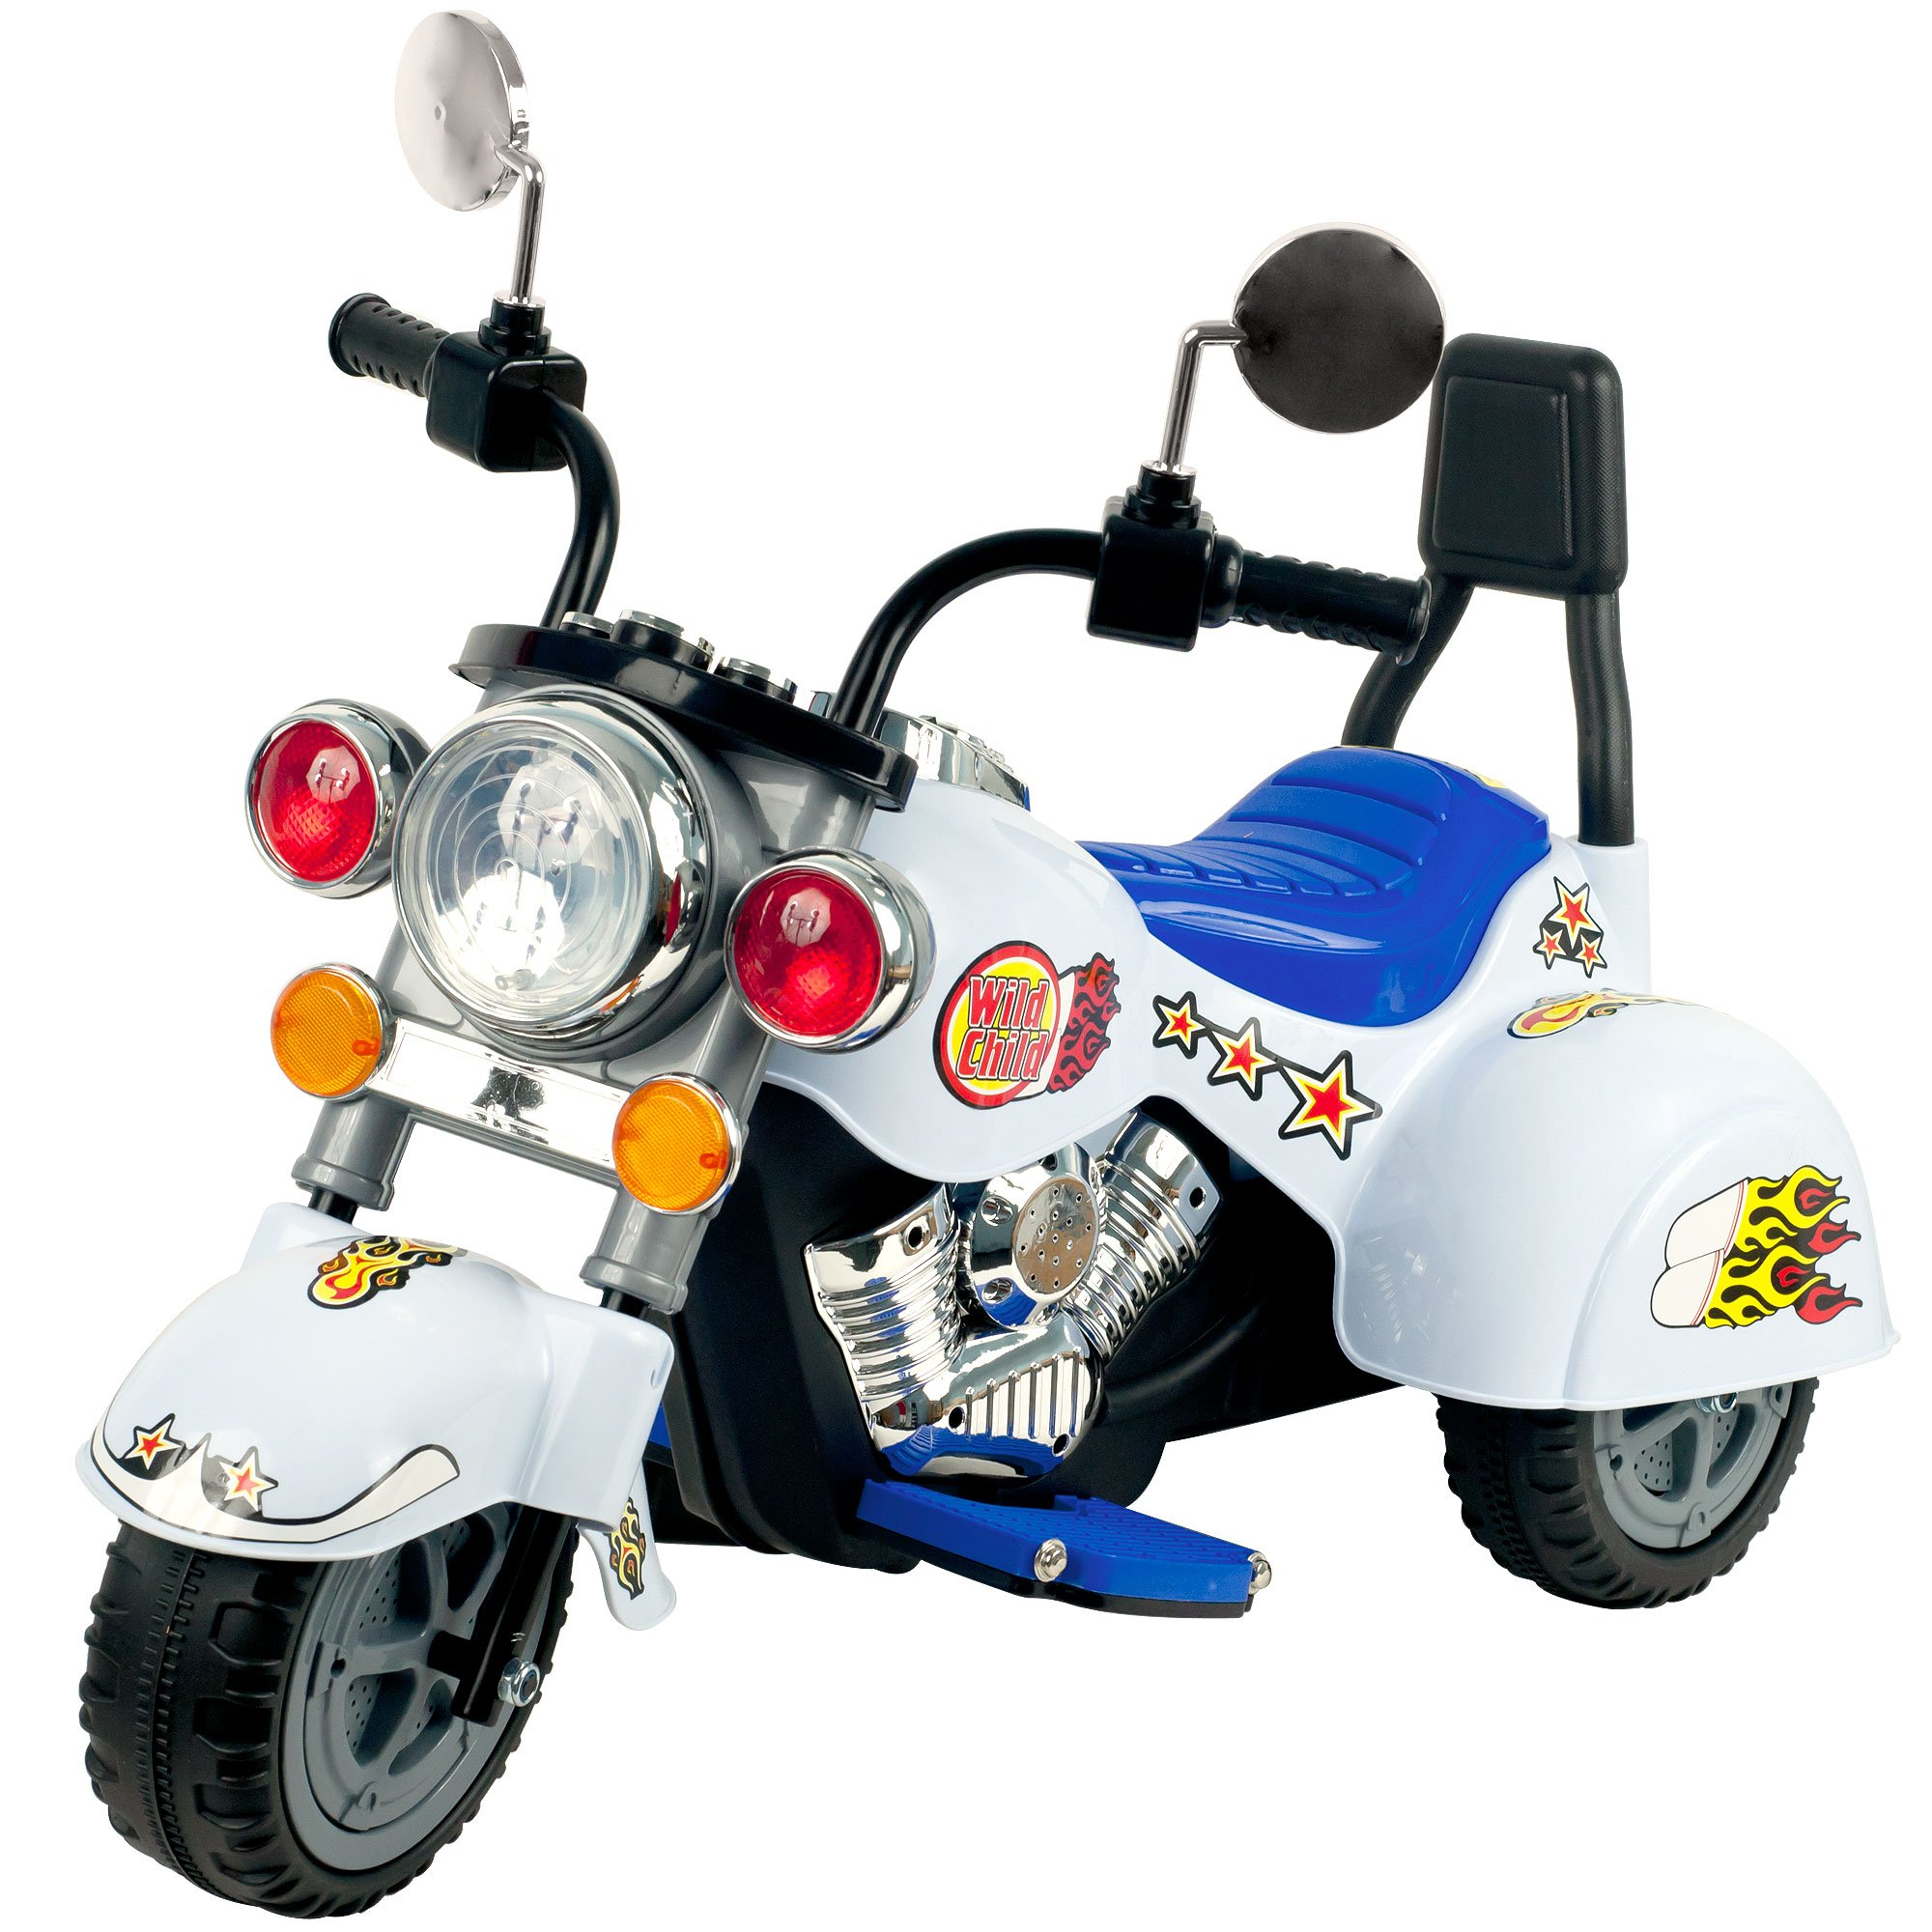 Ride on Toy, 3 Wheel Trike Chopper Motorcycle for Kids by Lil' Rider - Battery Powered Ride on Toys for Boys and Girls, Toddler and Up - White